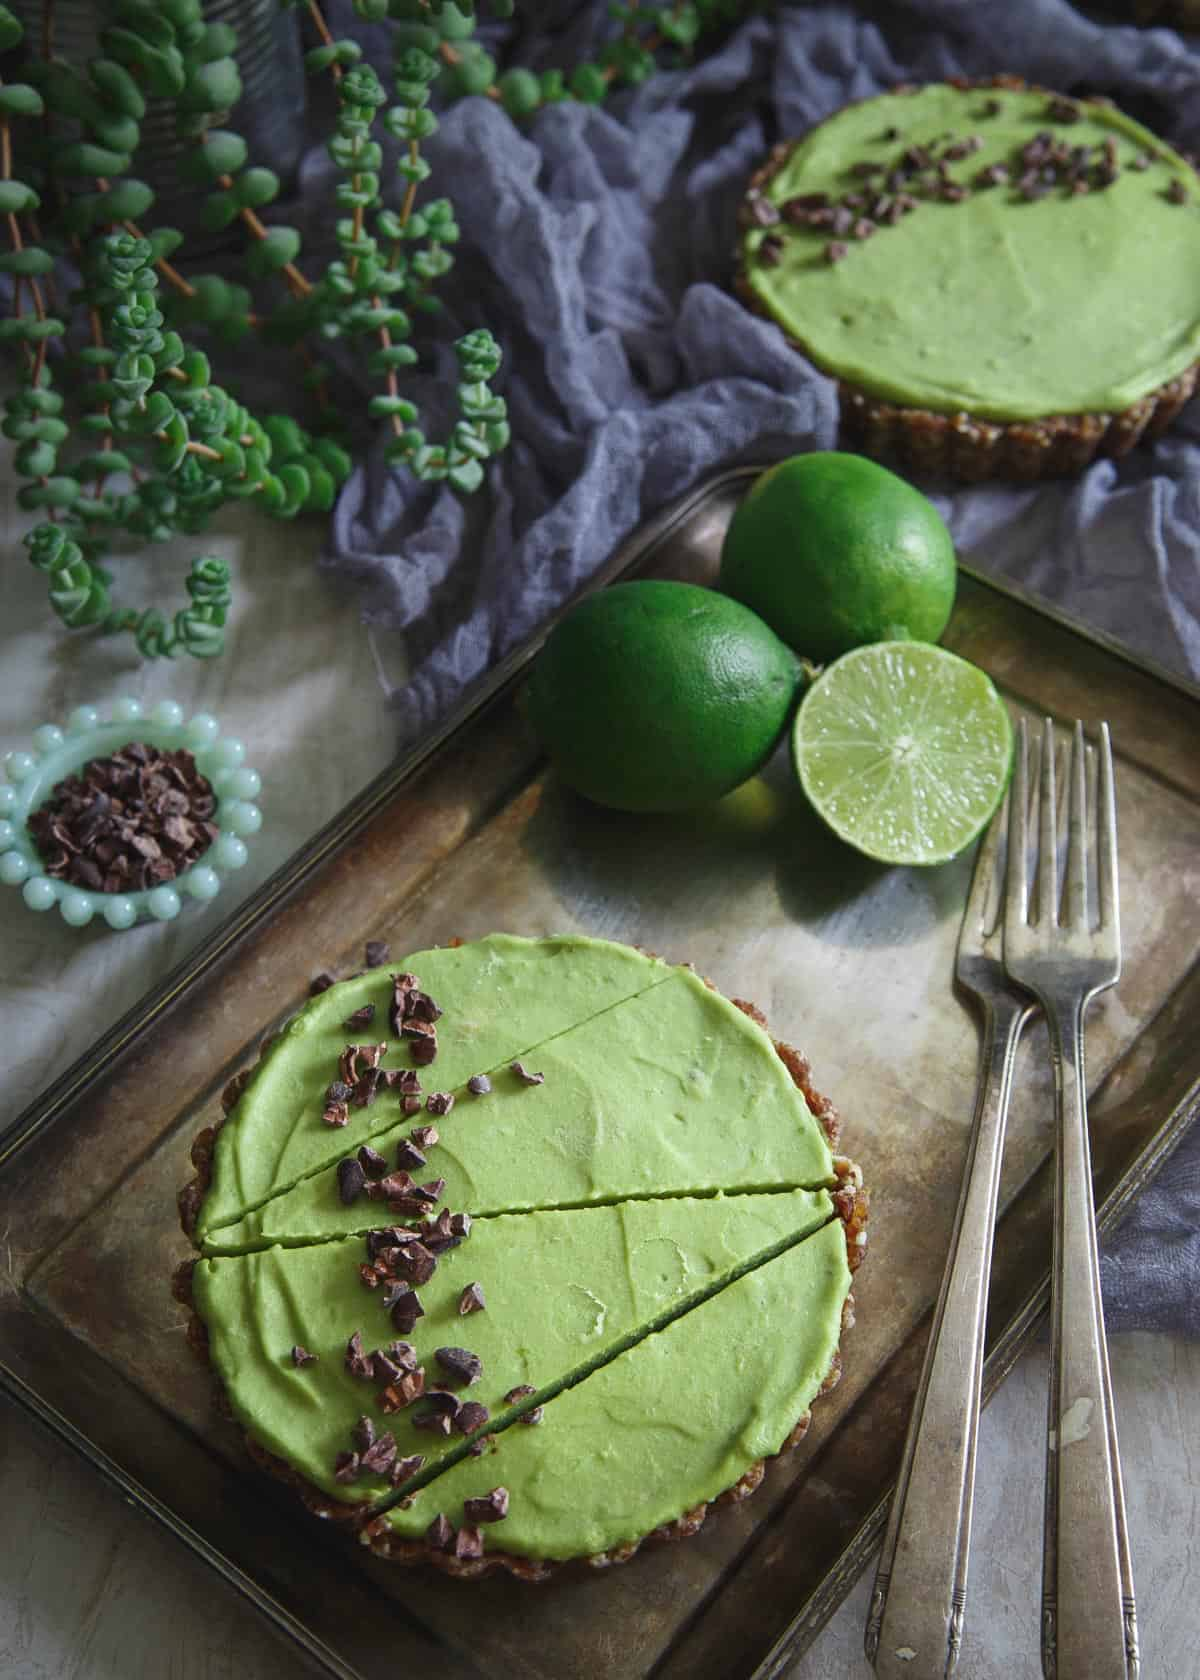 This Lime Avocado Tart is a refreshing no bake treat perfect for summer.